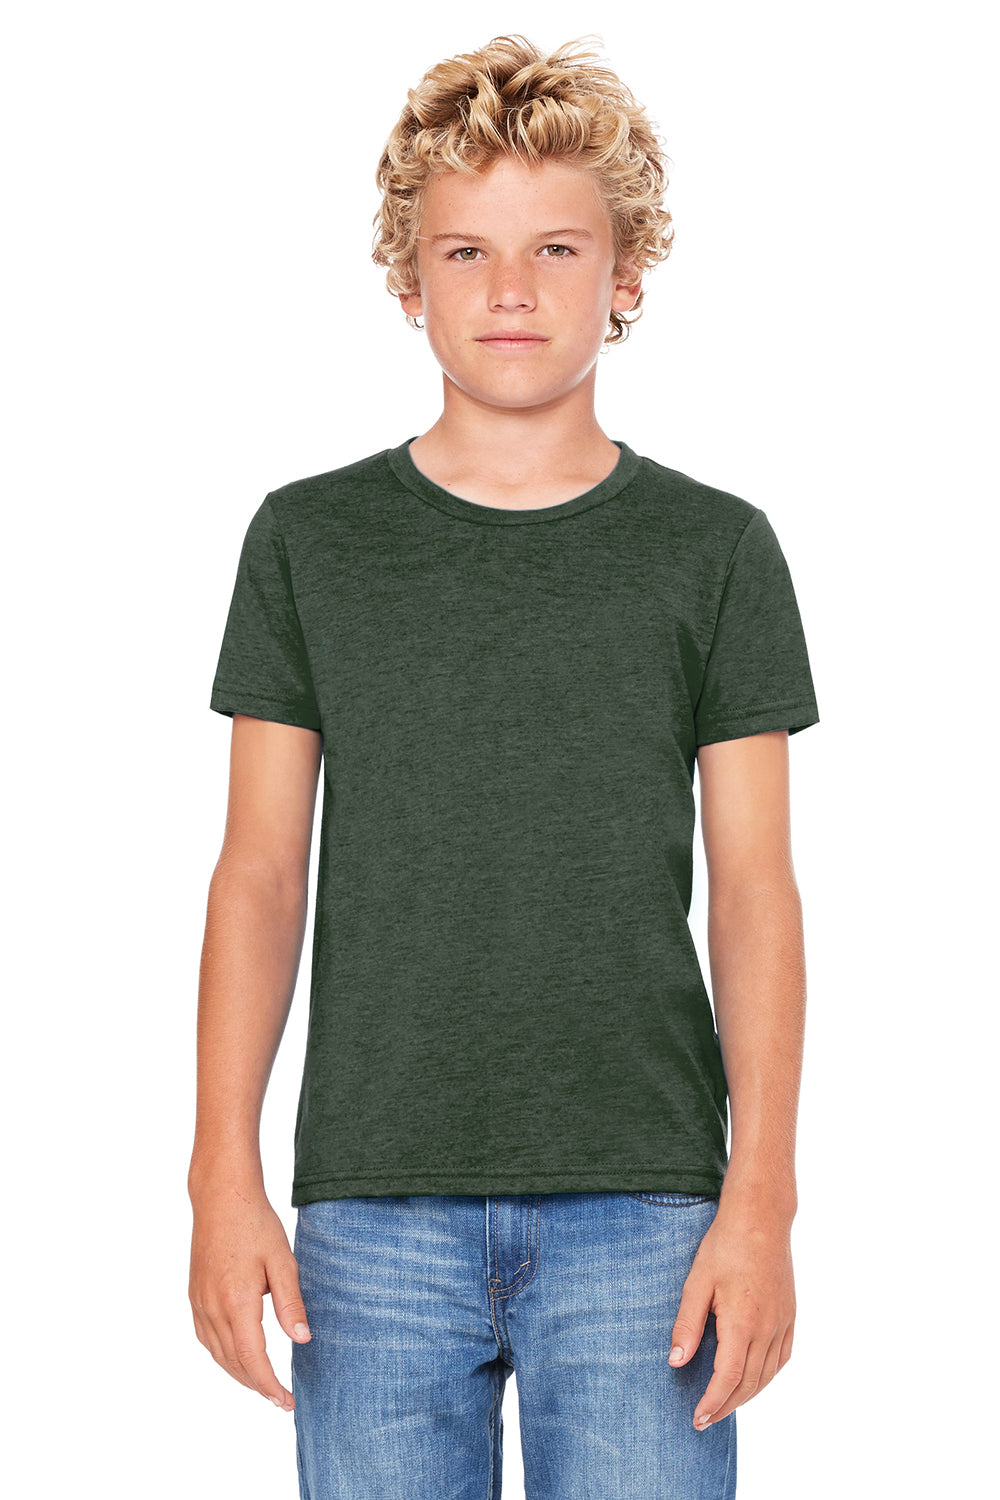 Bella + Canvas 3001Y Youth Jersey Short Sleeve Crewneck T-Shirt Heather Forest Green Front